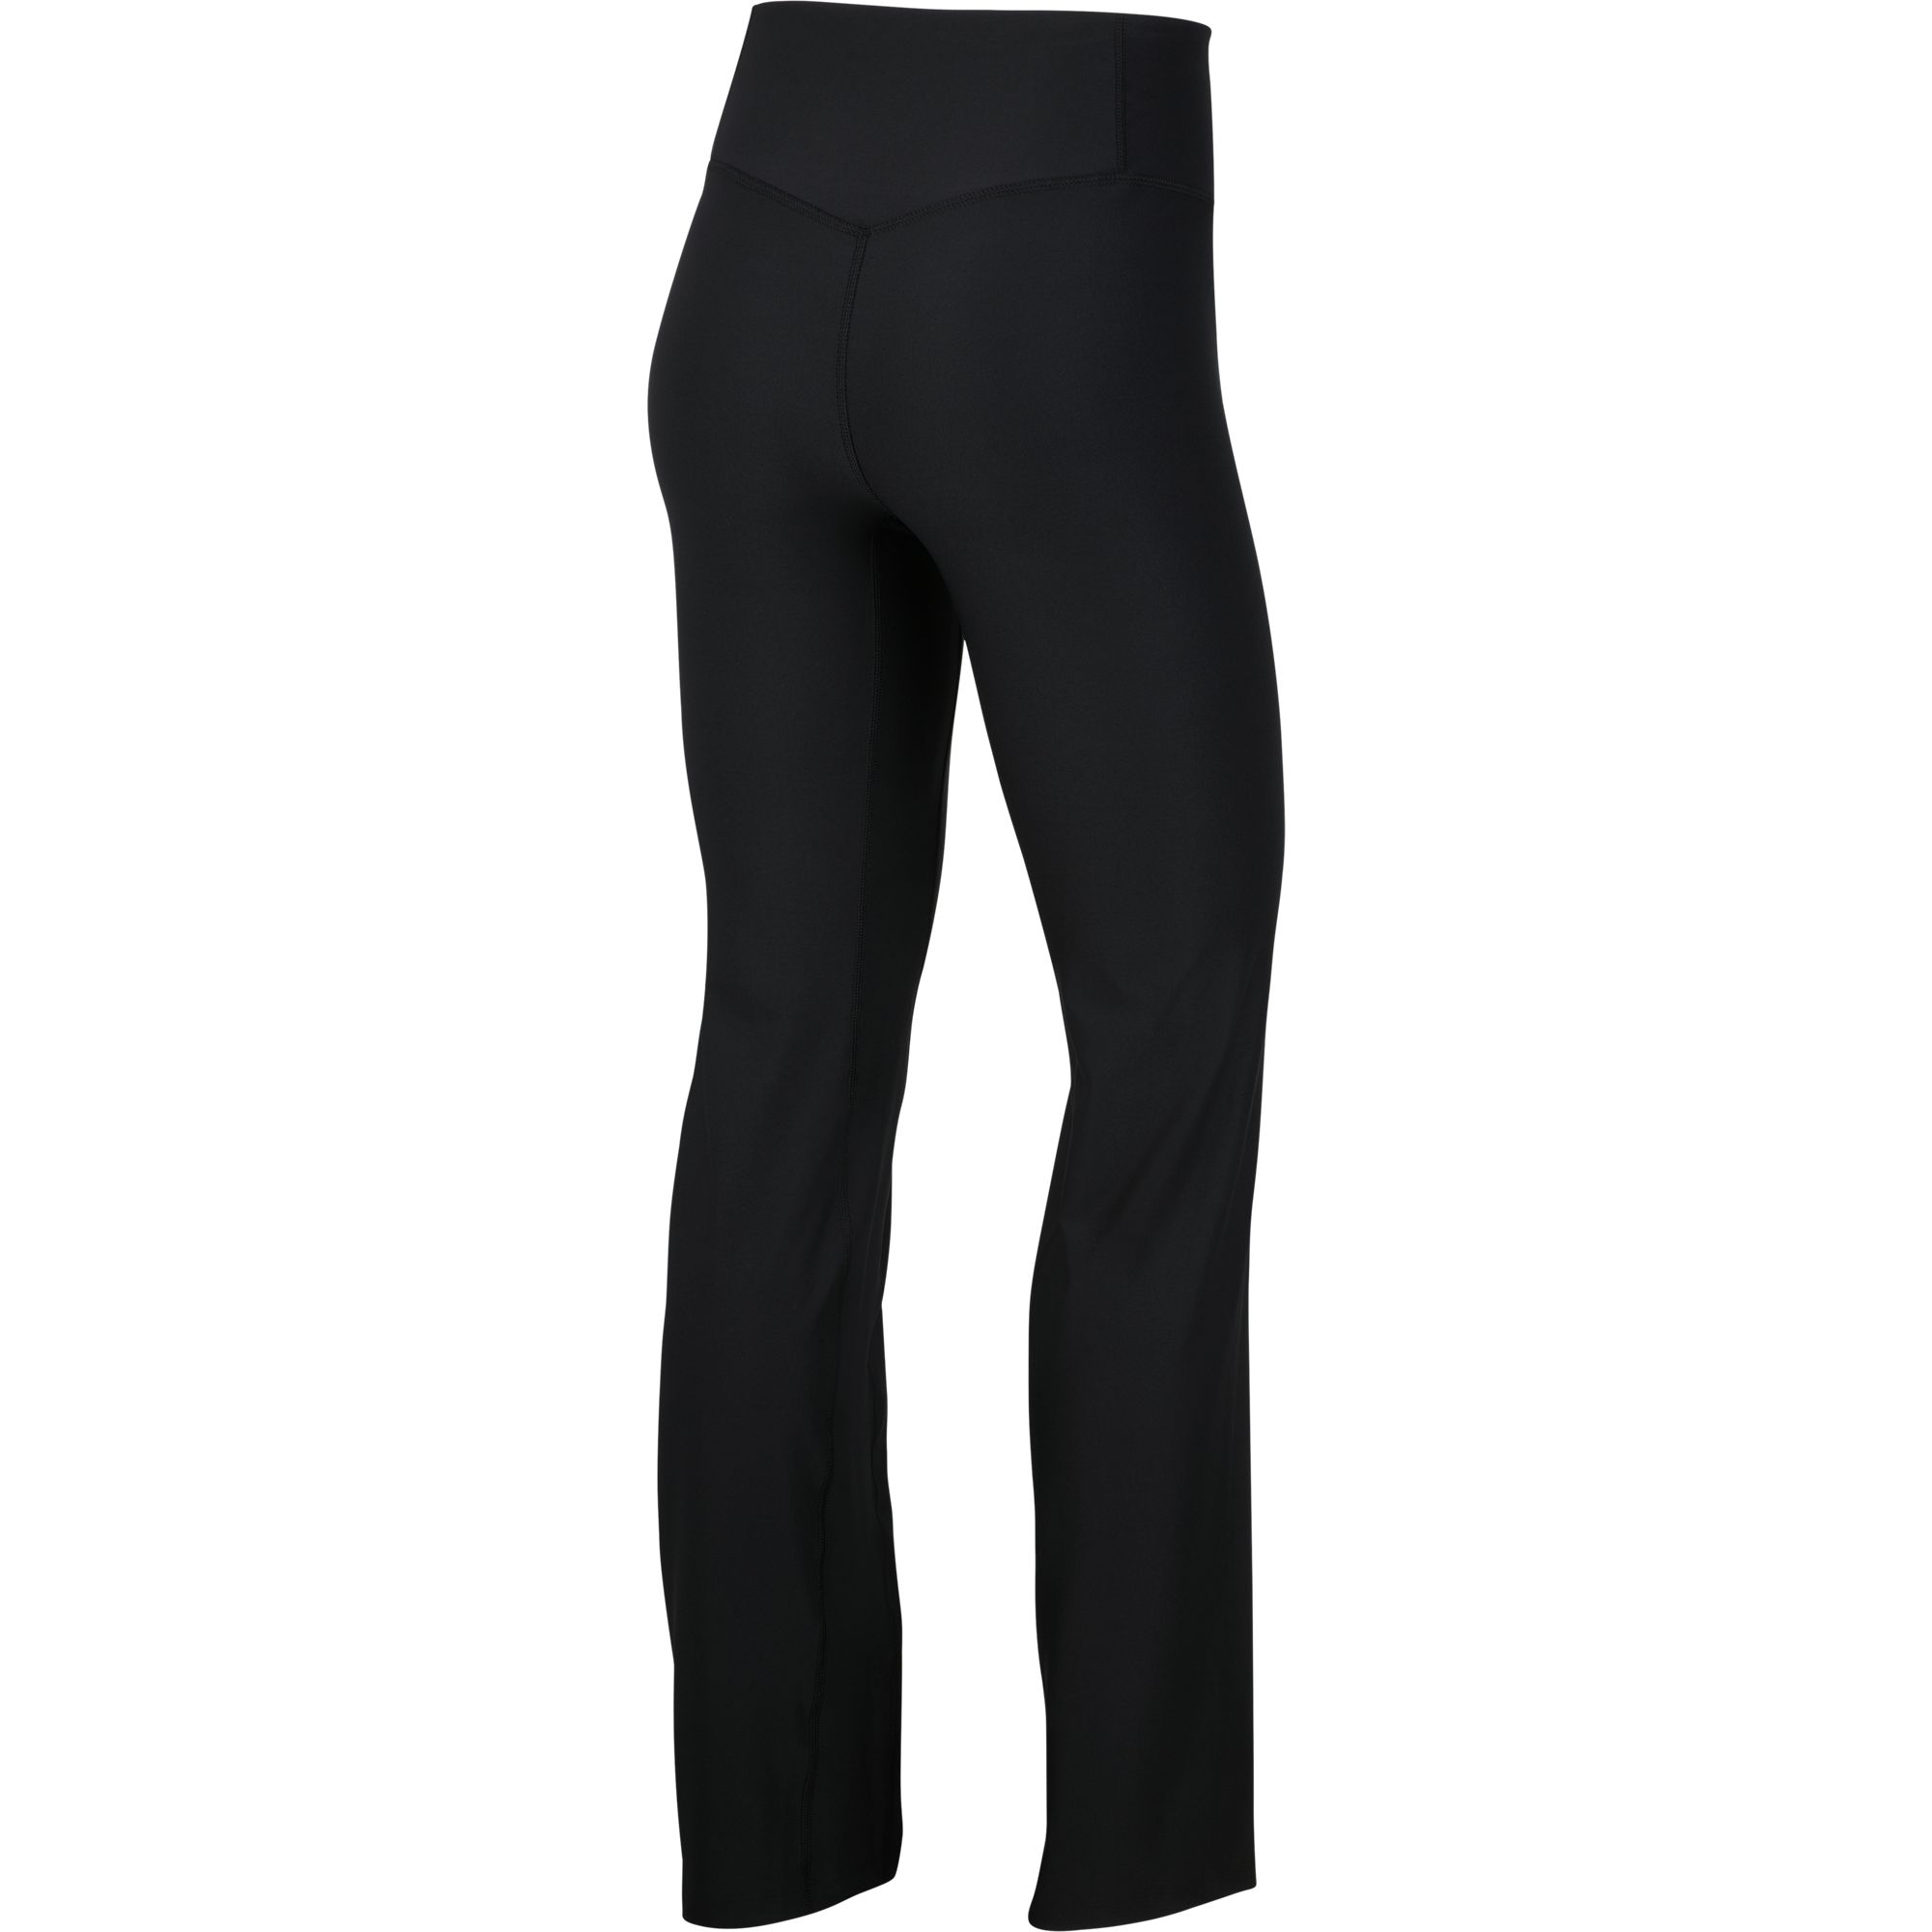 Women's Power Classic Workout Pants, , large